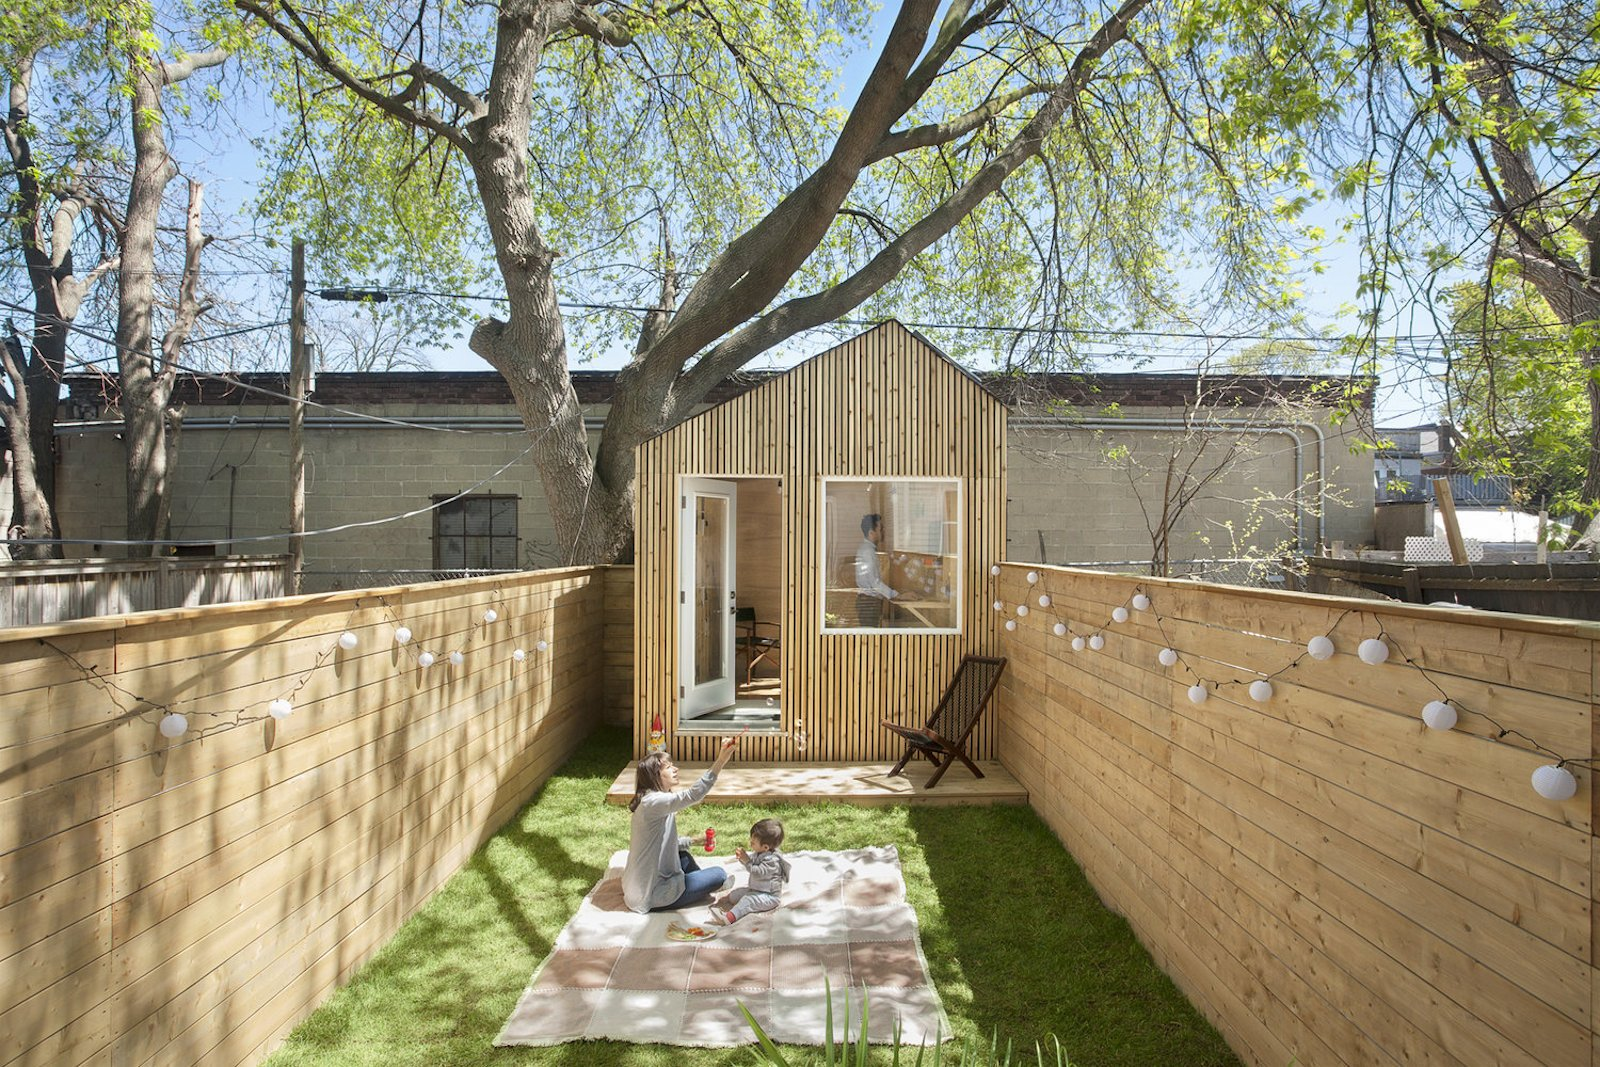 Outdoor, Back Yard, Grass, Trees, Small Patio, Porch, Deck, Wood Patio, Porch, Deck, Horizontal Fences, Wall, Hanging Lighting, and Wood Fences, Wall  Photo 10 of 10 in This Architect's Tiny Studio Is the Ultimate Backyard Workspace